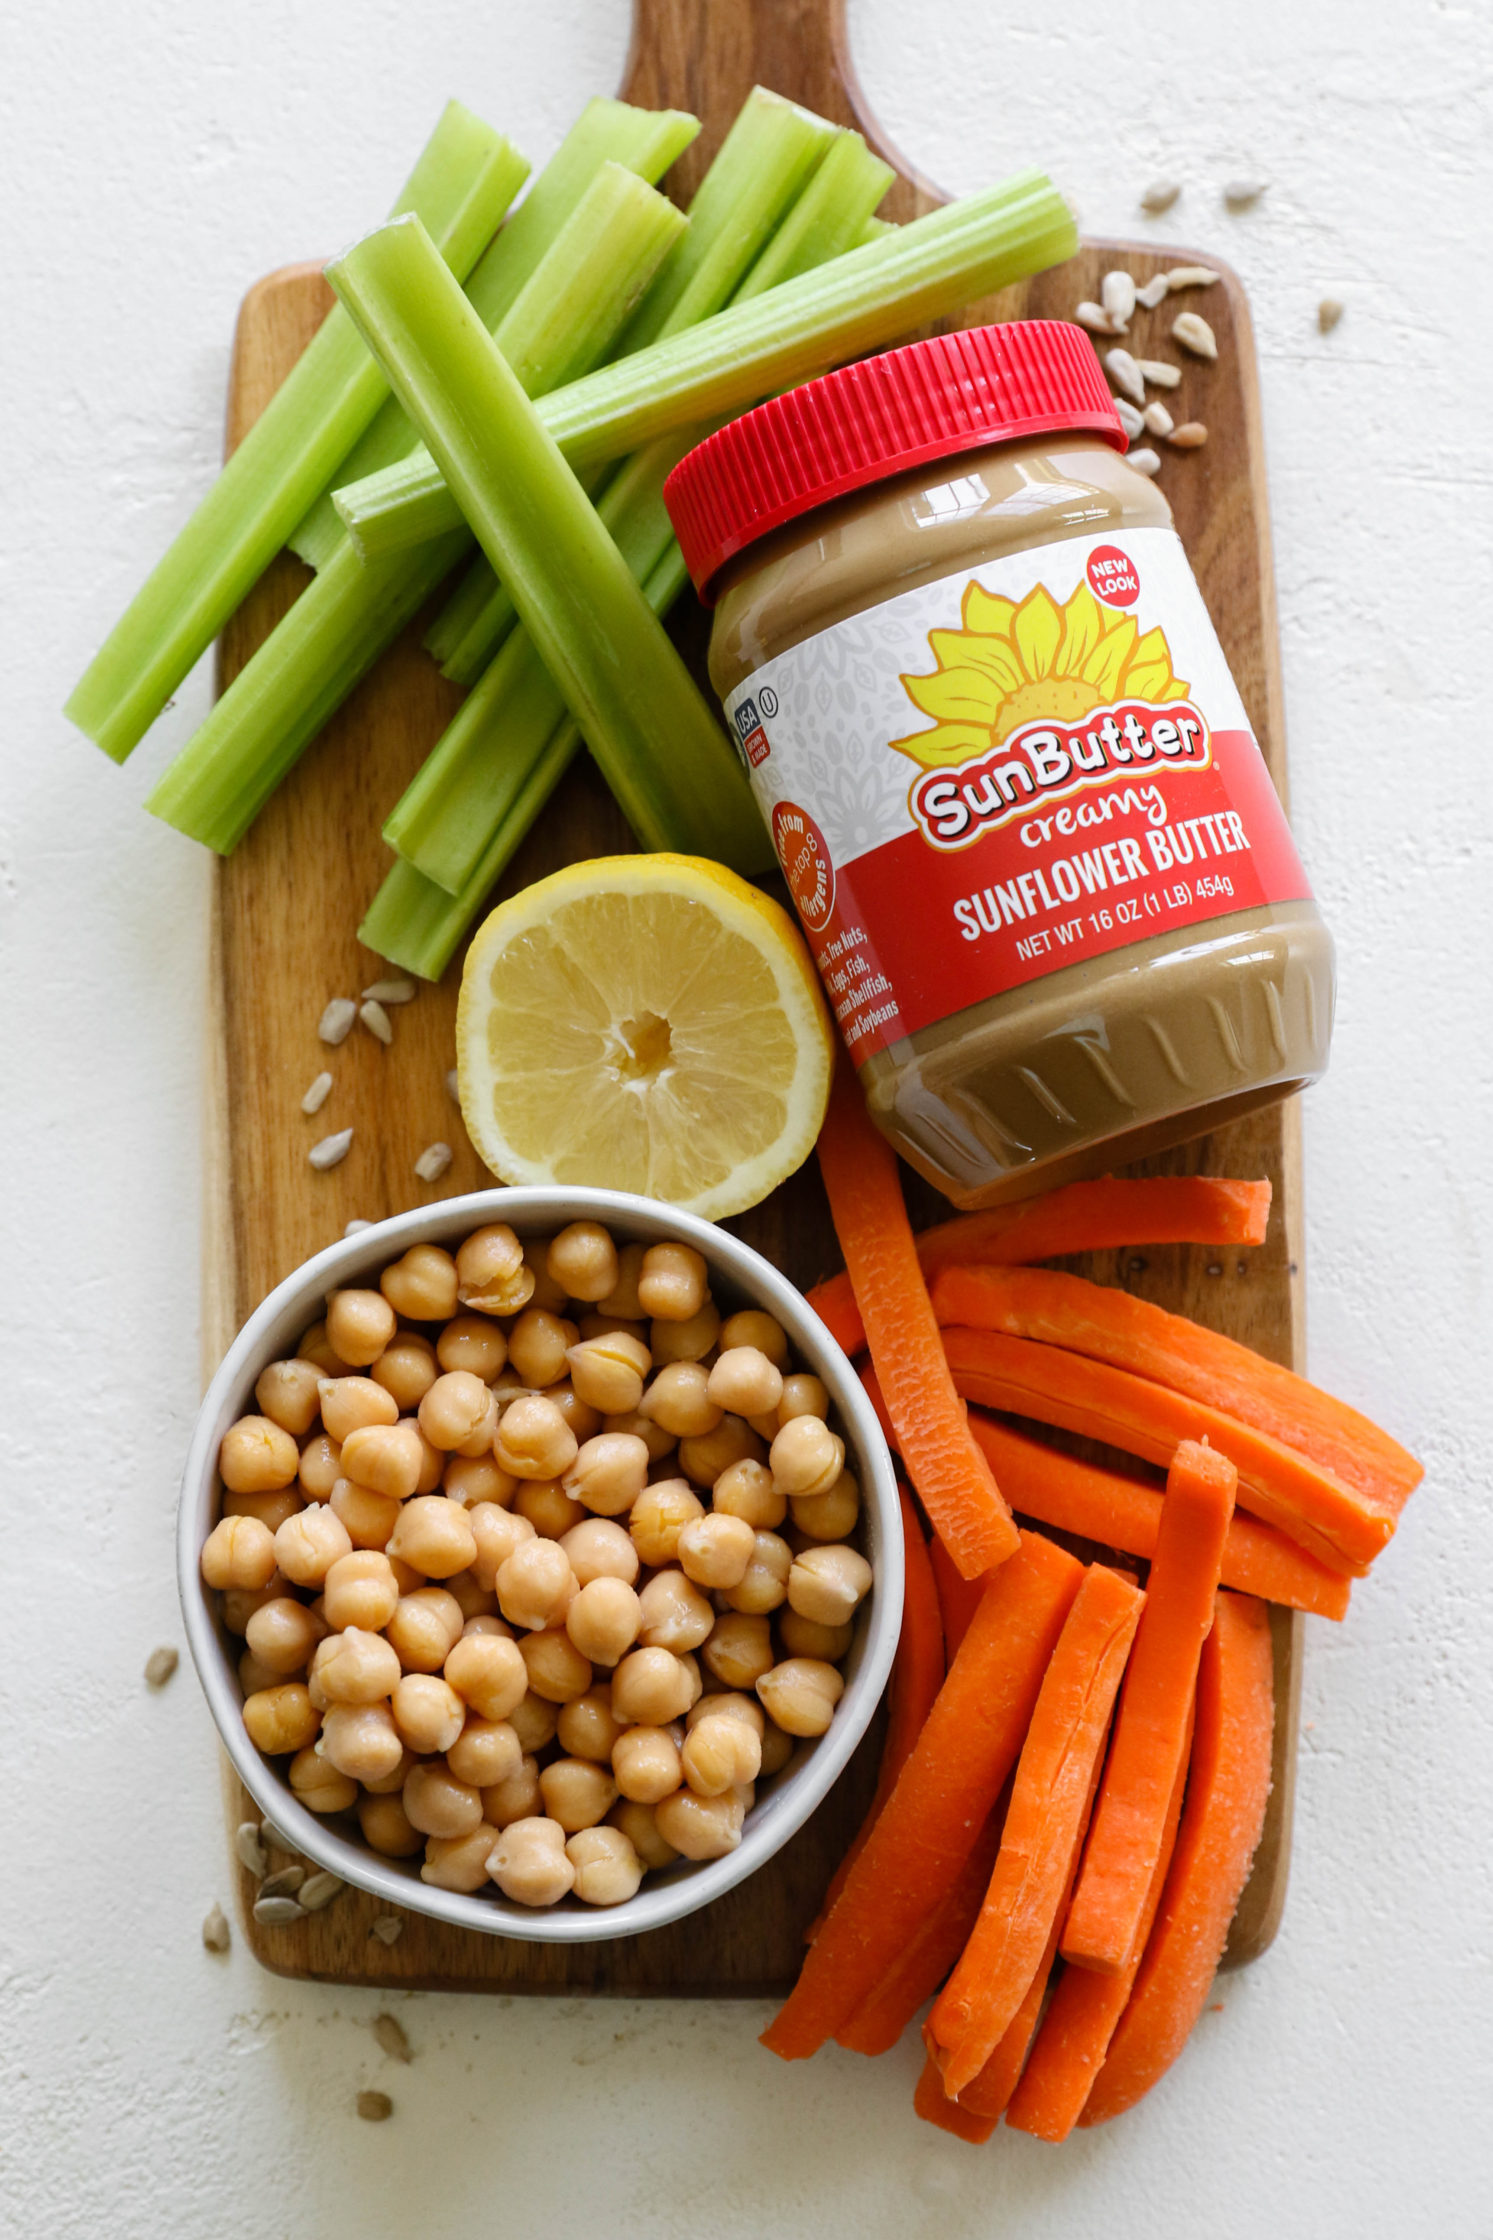 SunButter hummus ingredients